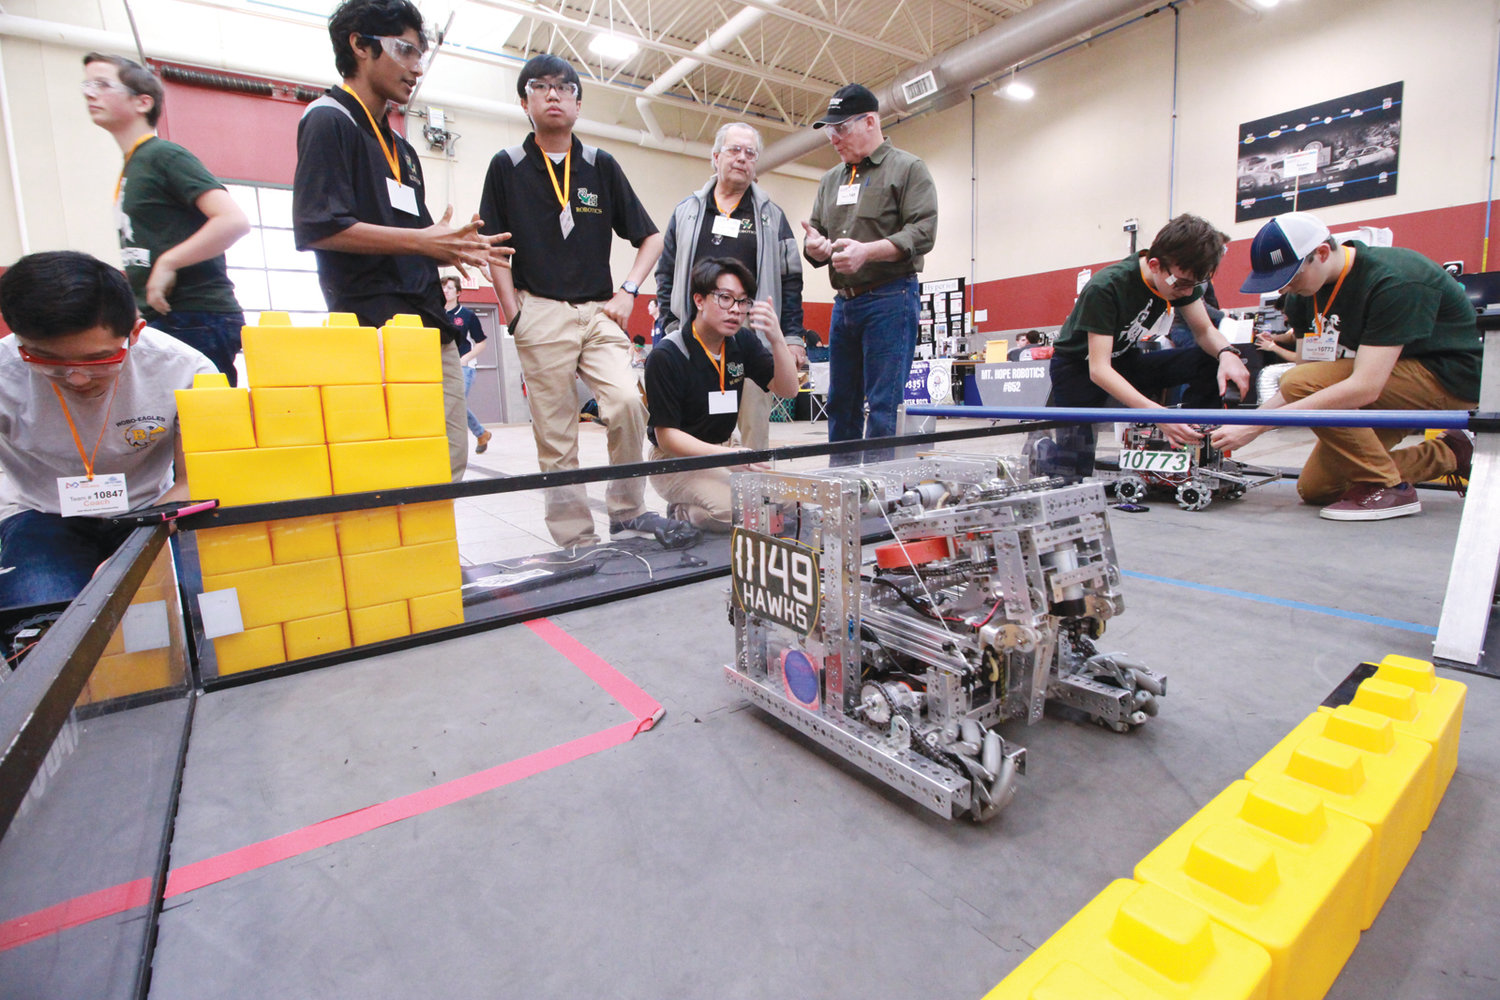 HAWK POWER: The Bishop Hendricken Hawk team looks on as their robot makes an autonomous run in the practice ring.